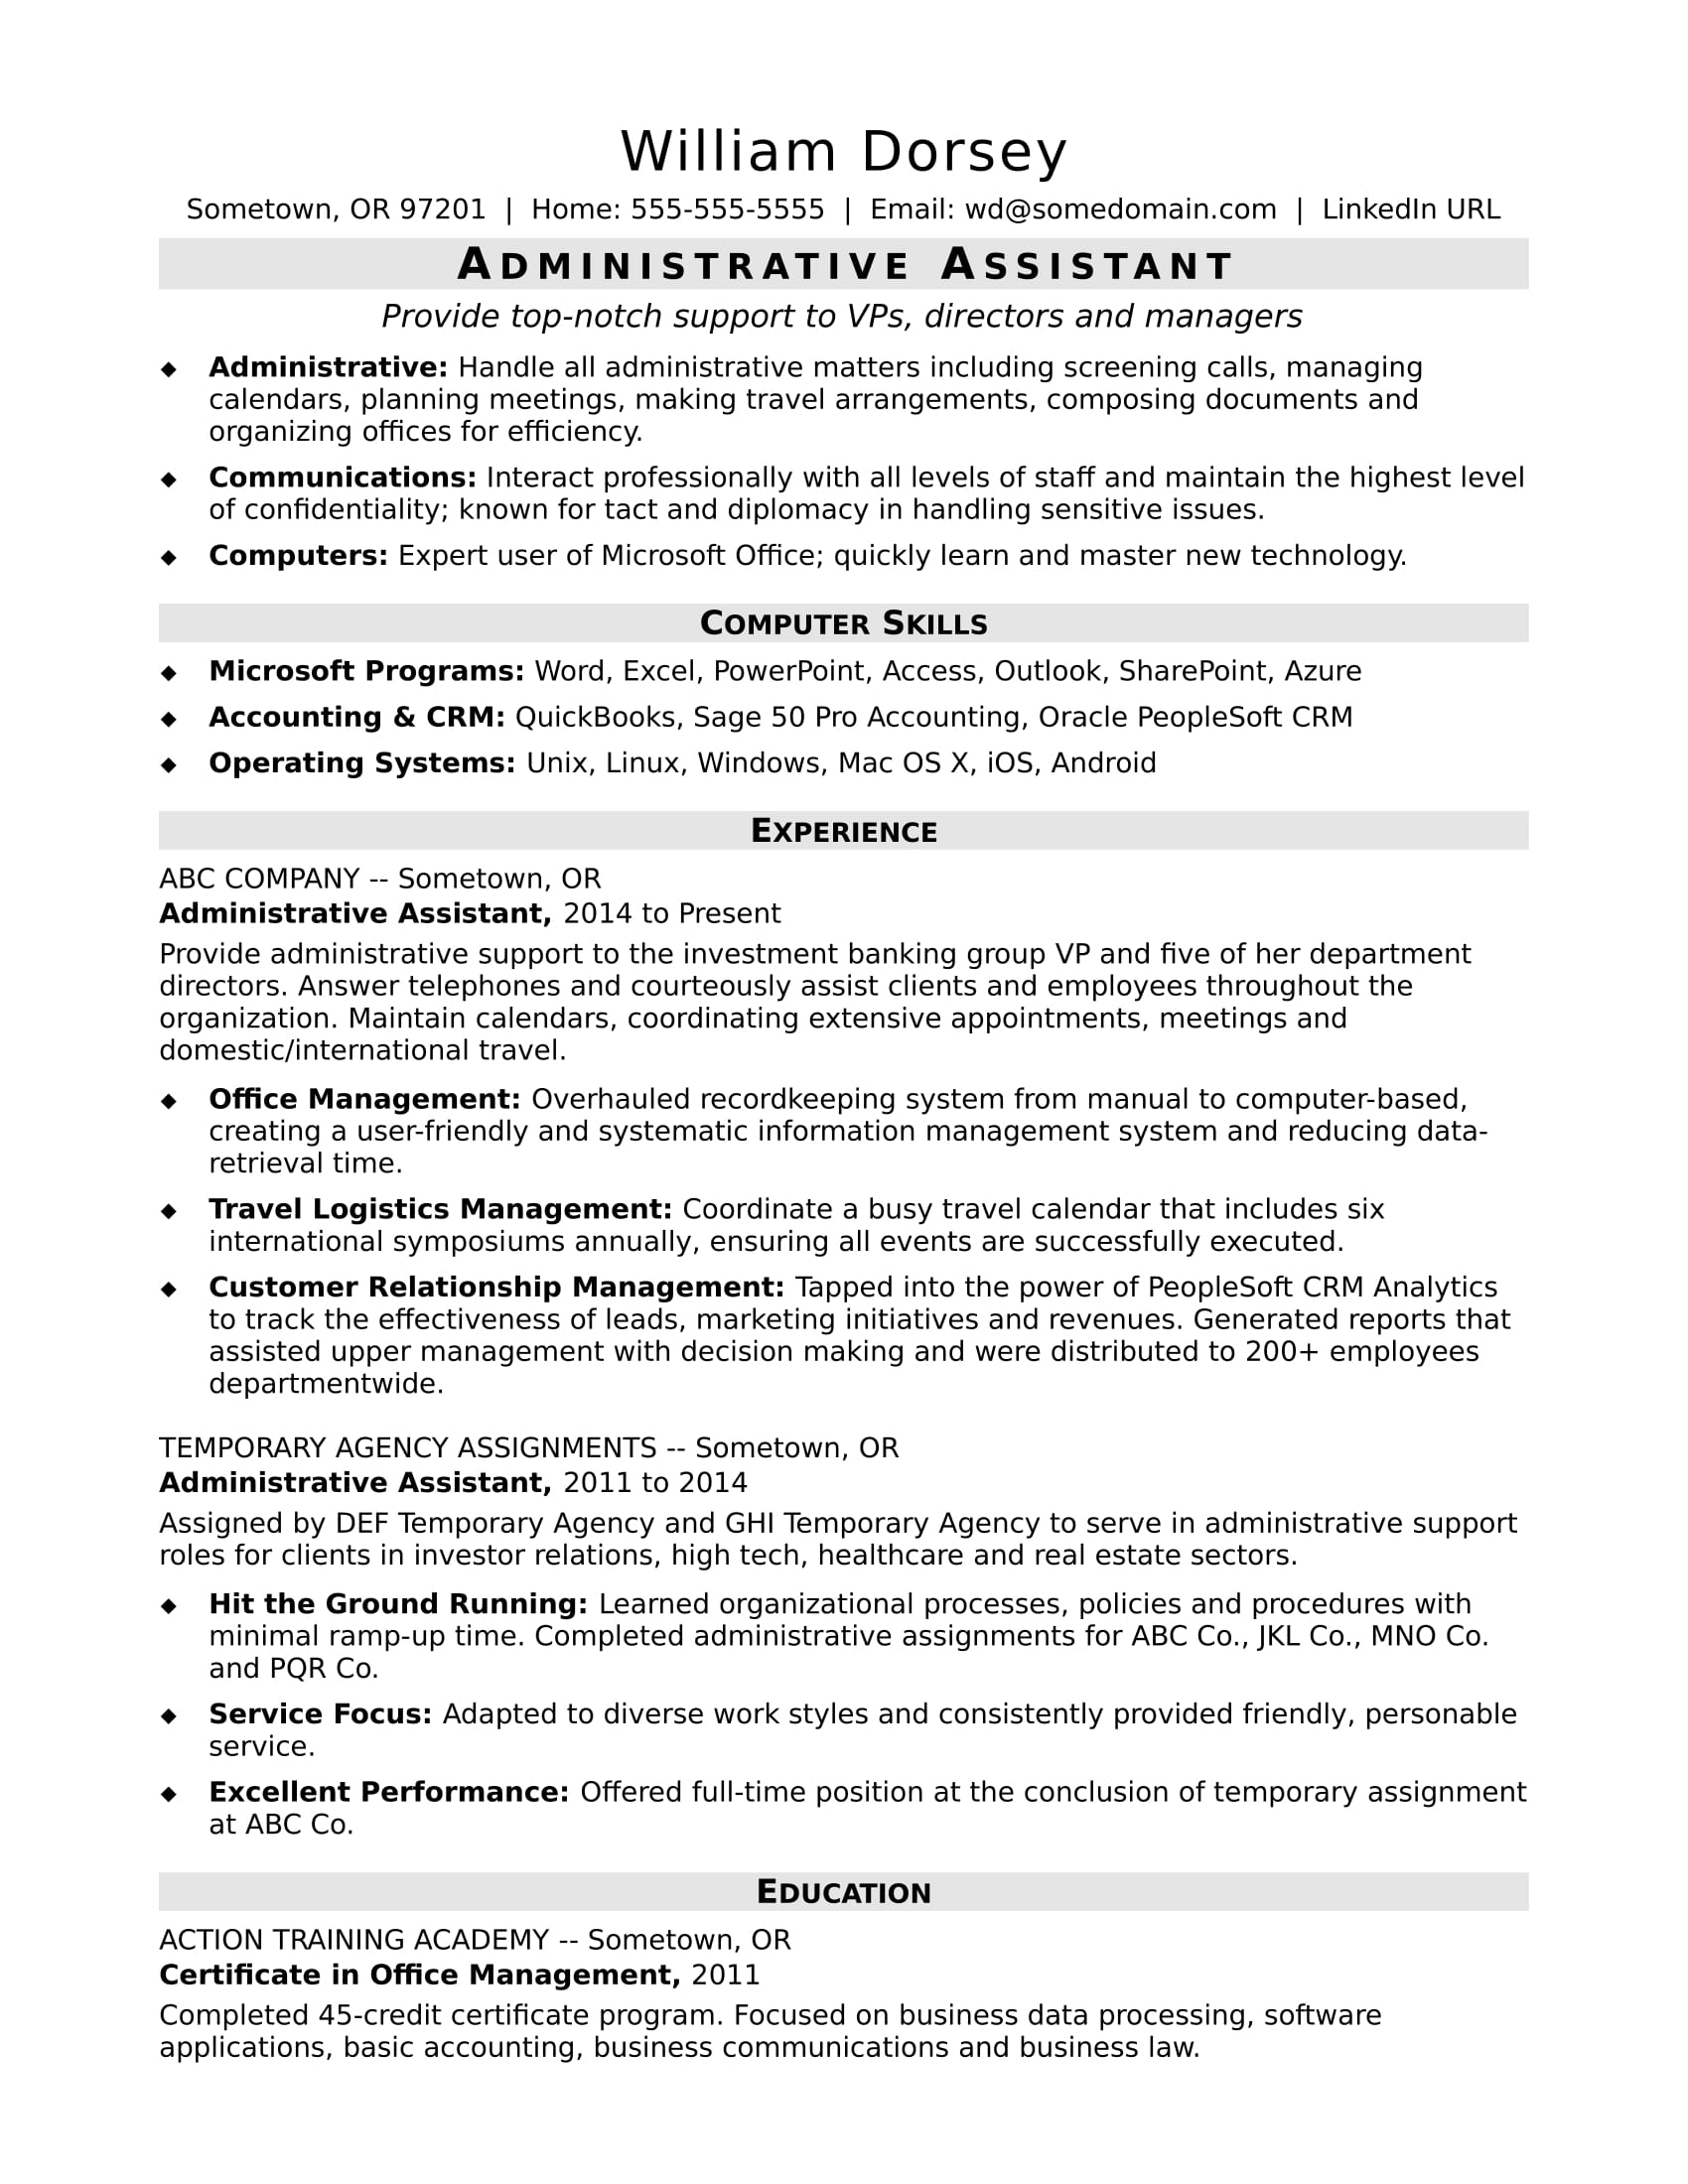 sample resume for a midlevel administrative assistant - Administrative Resume Samples